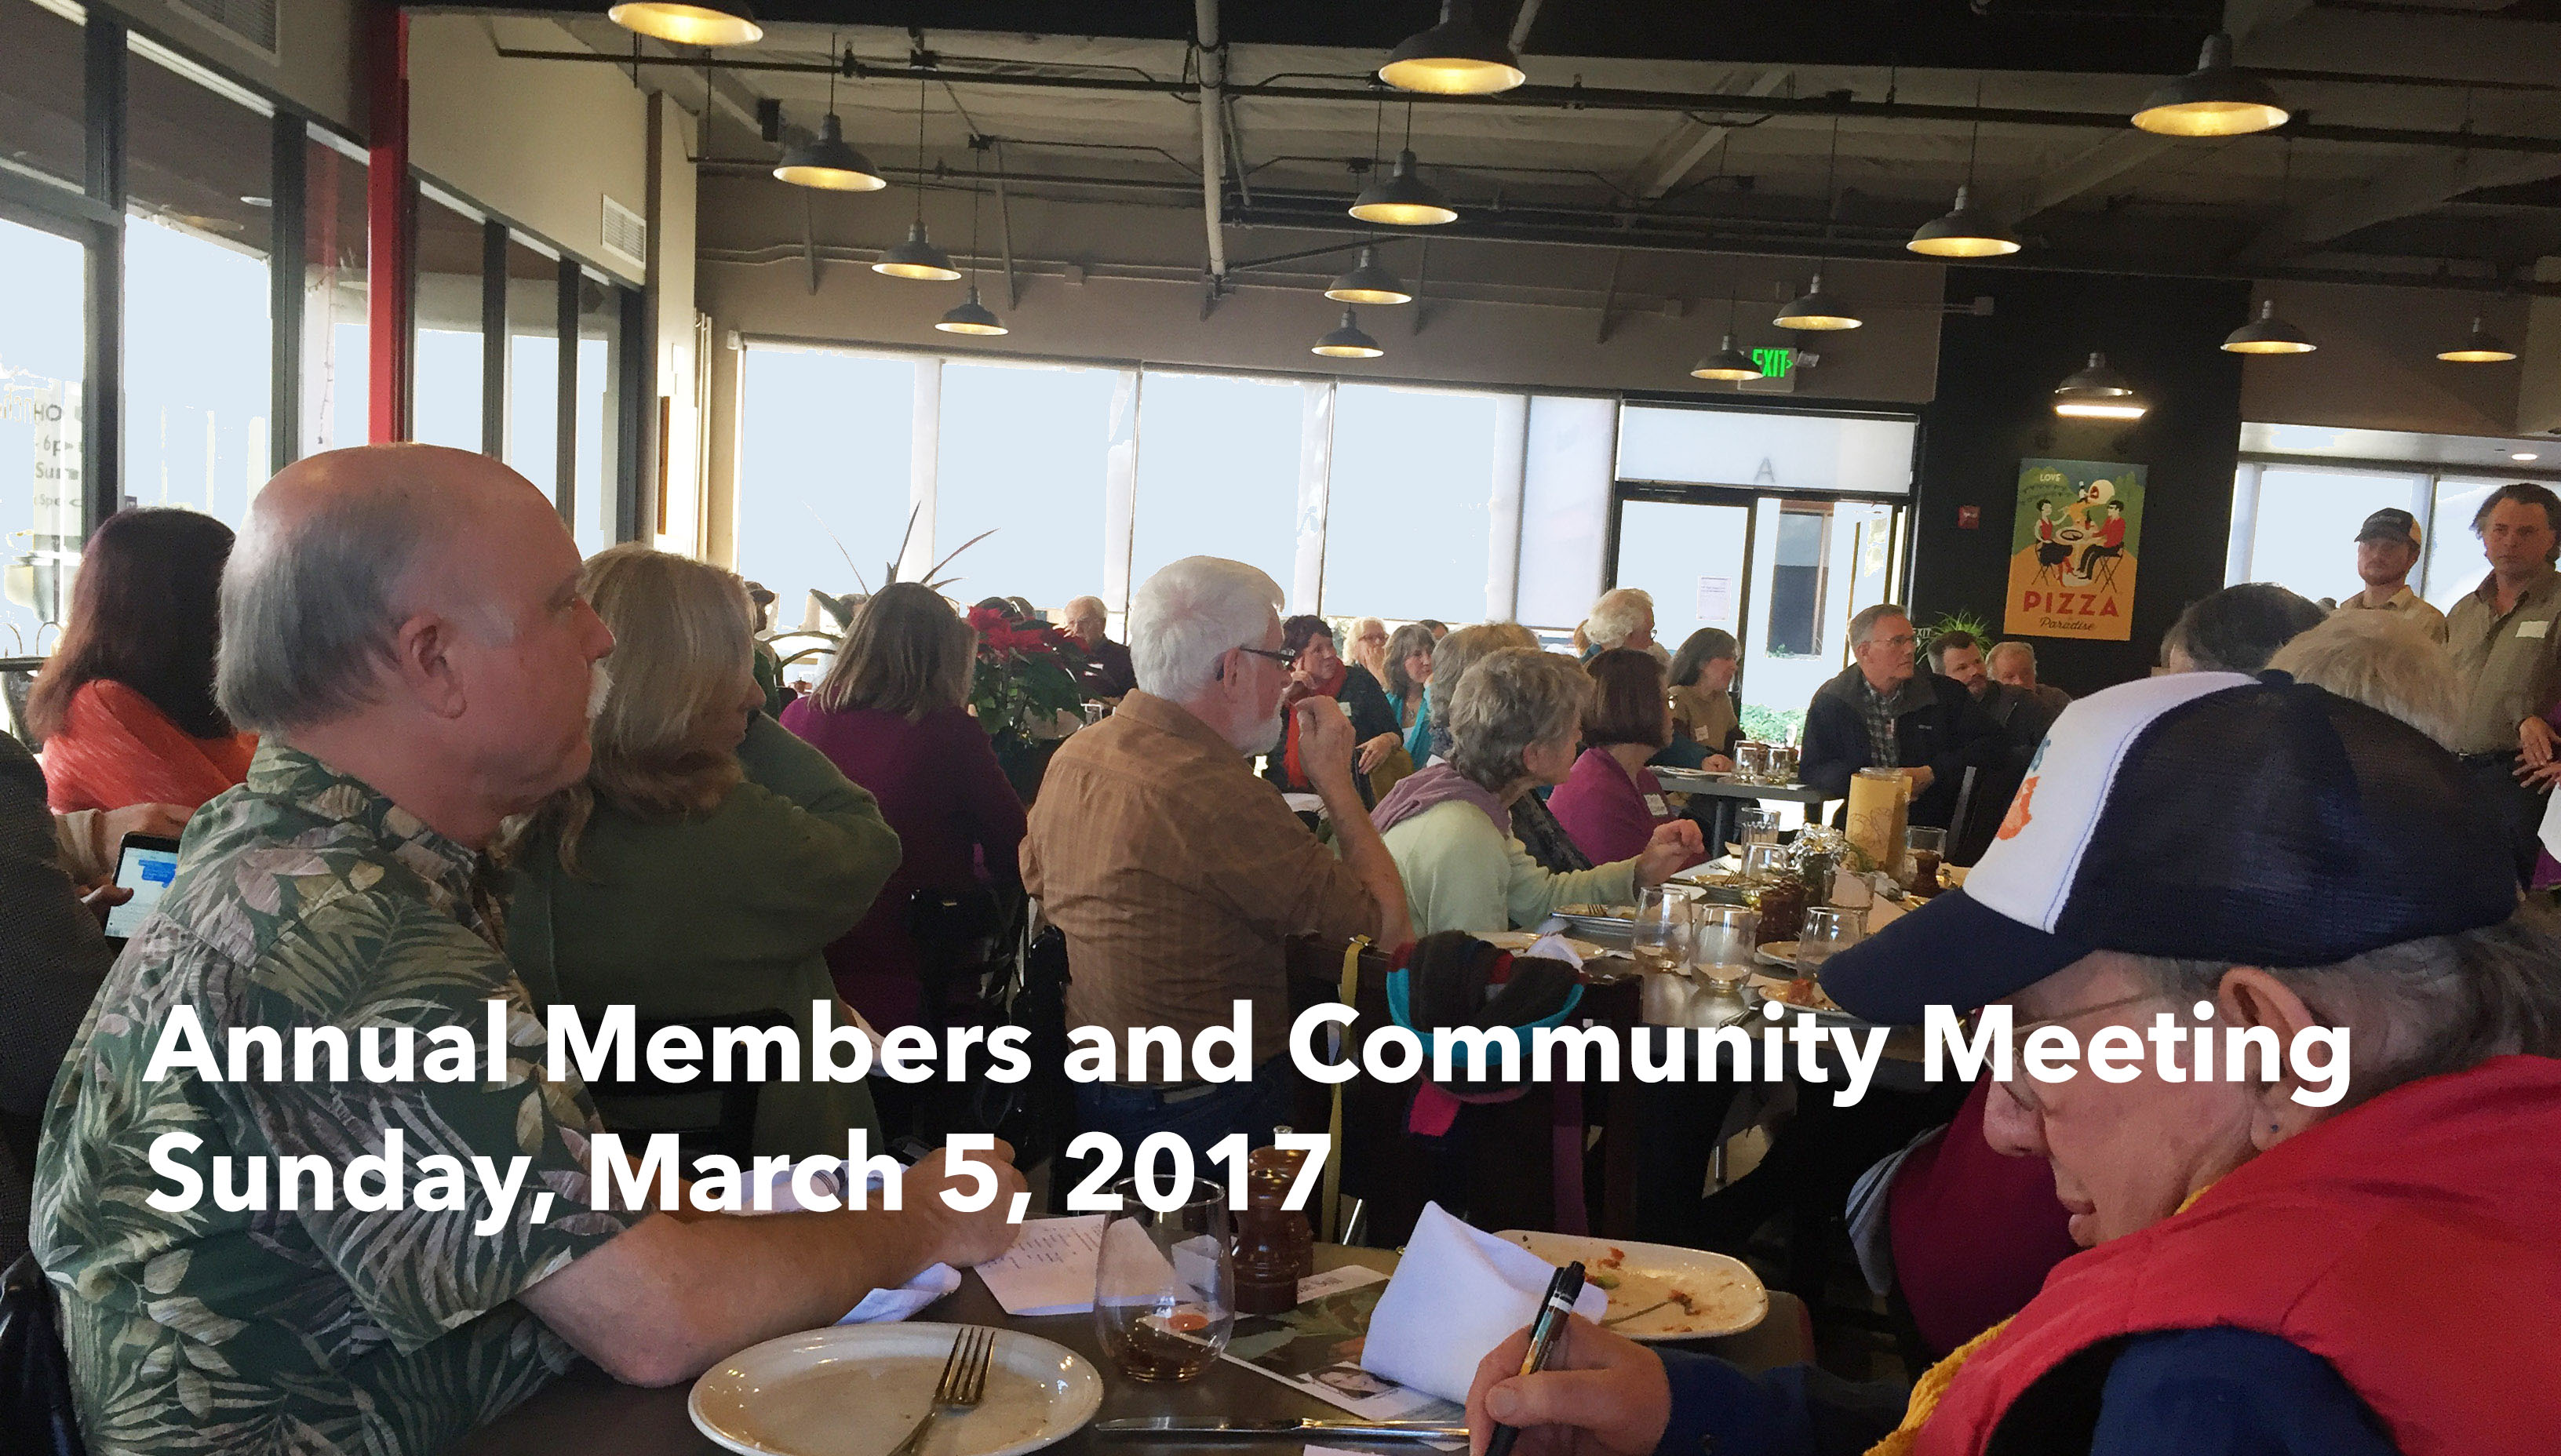 2017 Annual Members and Community Meeting